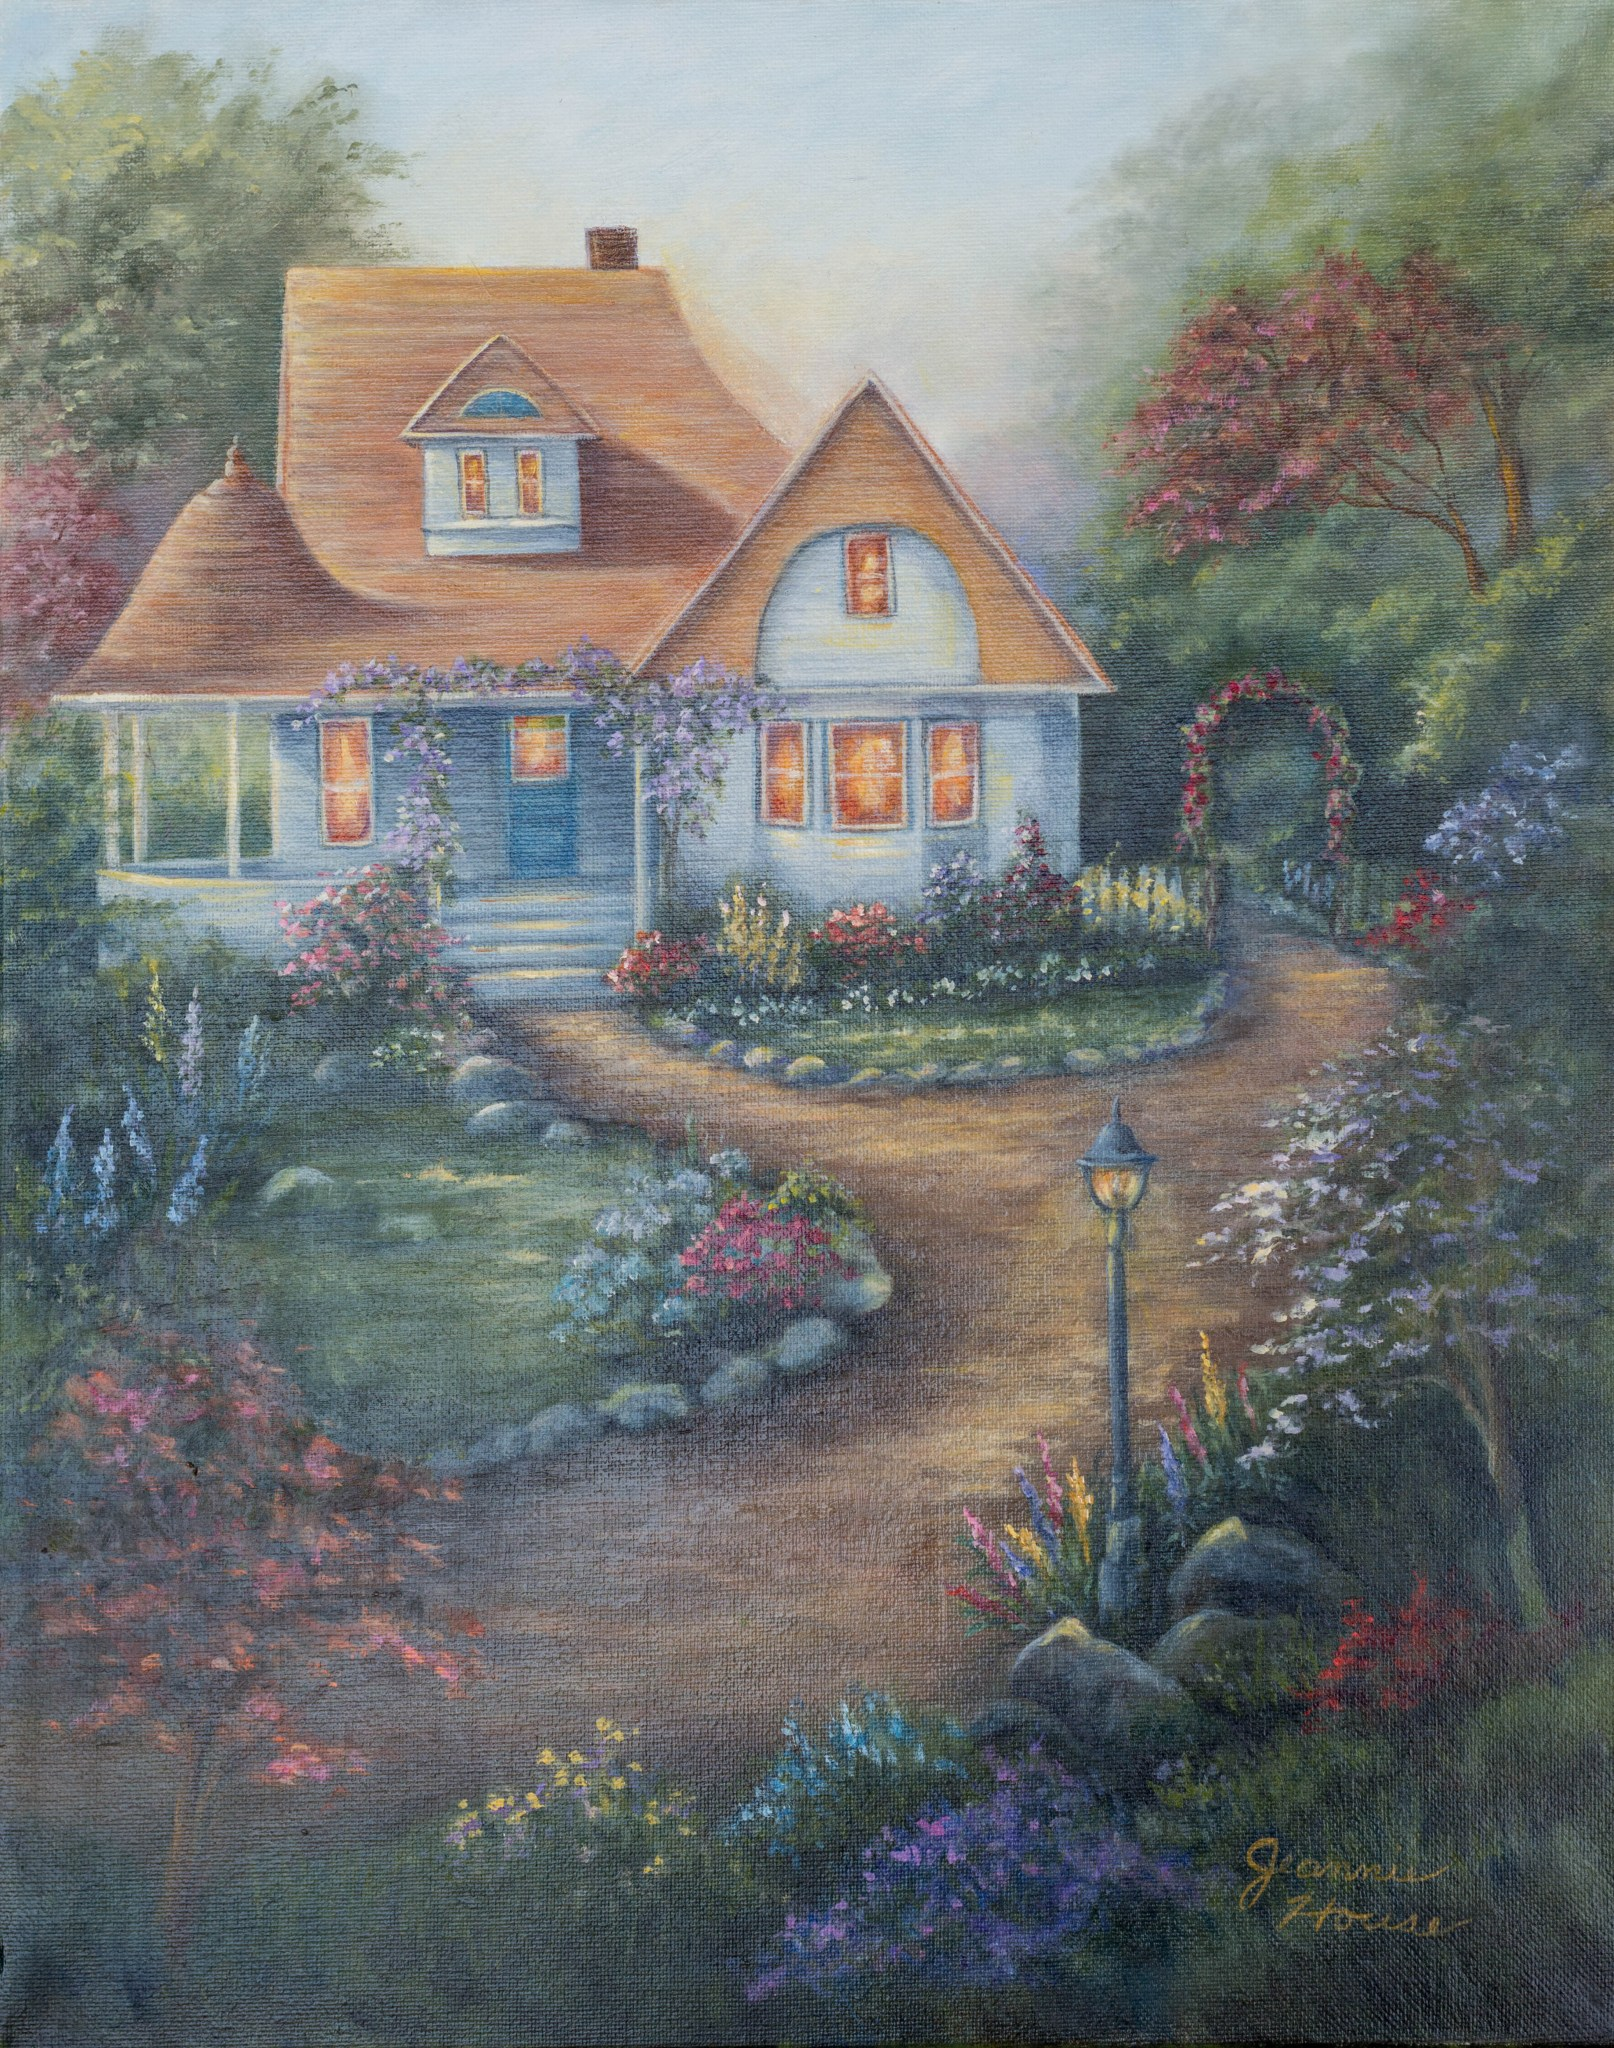 Dream of Home by Jeannie House